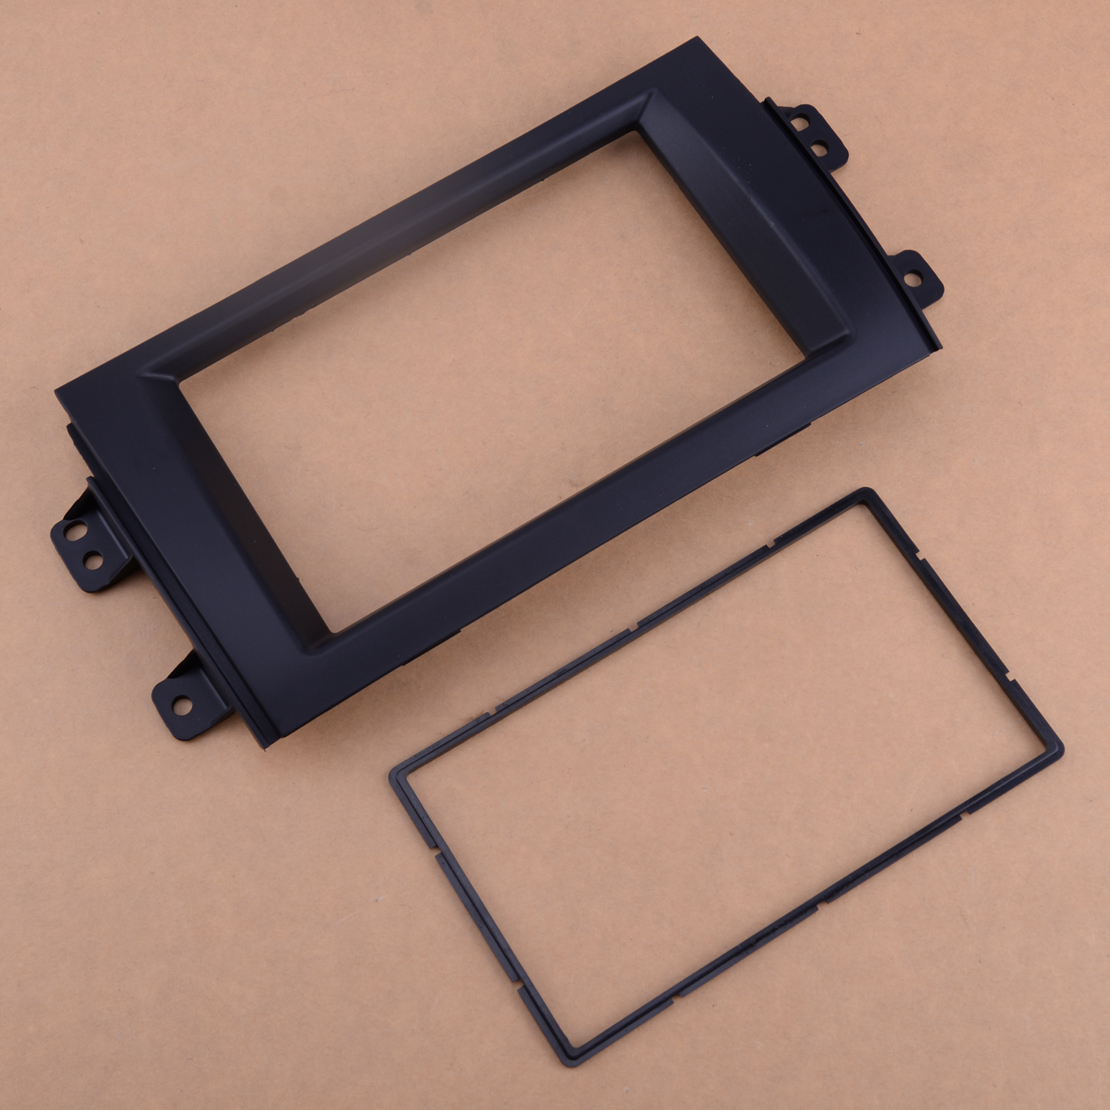 DWCX Car Double Din Stereo Radio Fascia Board Face Plate Frame Panel Trim Dash Kit Fit for <font><b>Suzuki</b></font> <font><b>SX4</b></font> Dashboard Replacement image